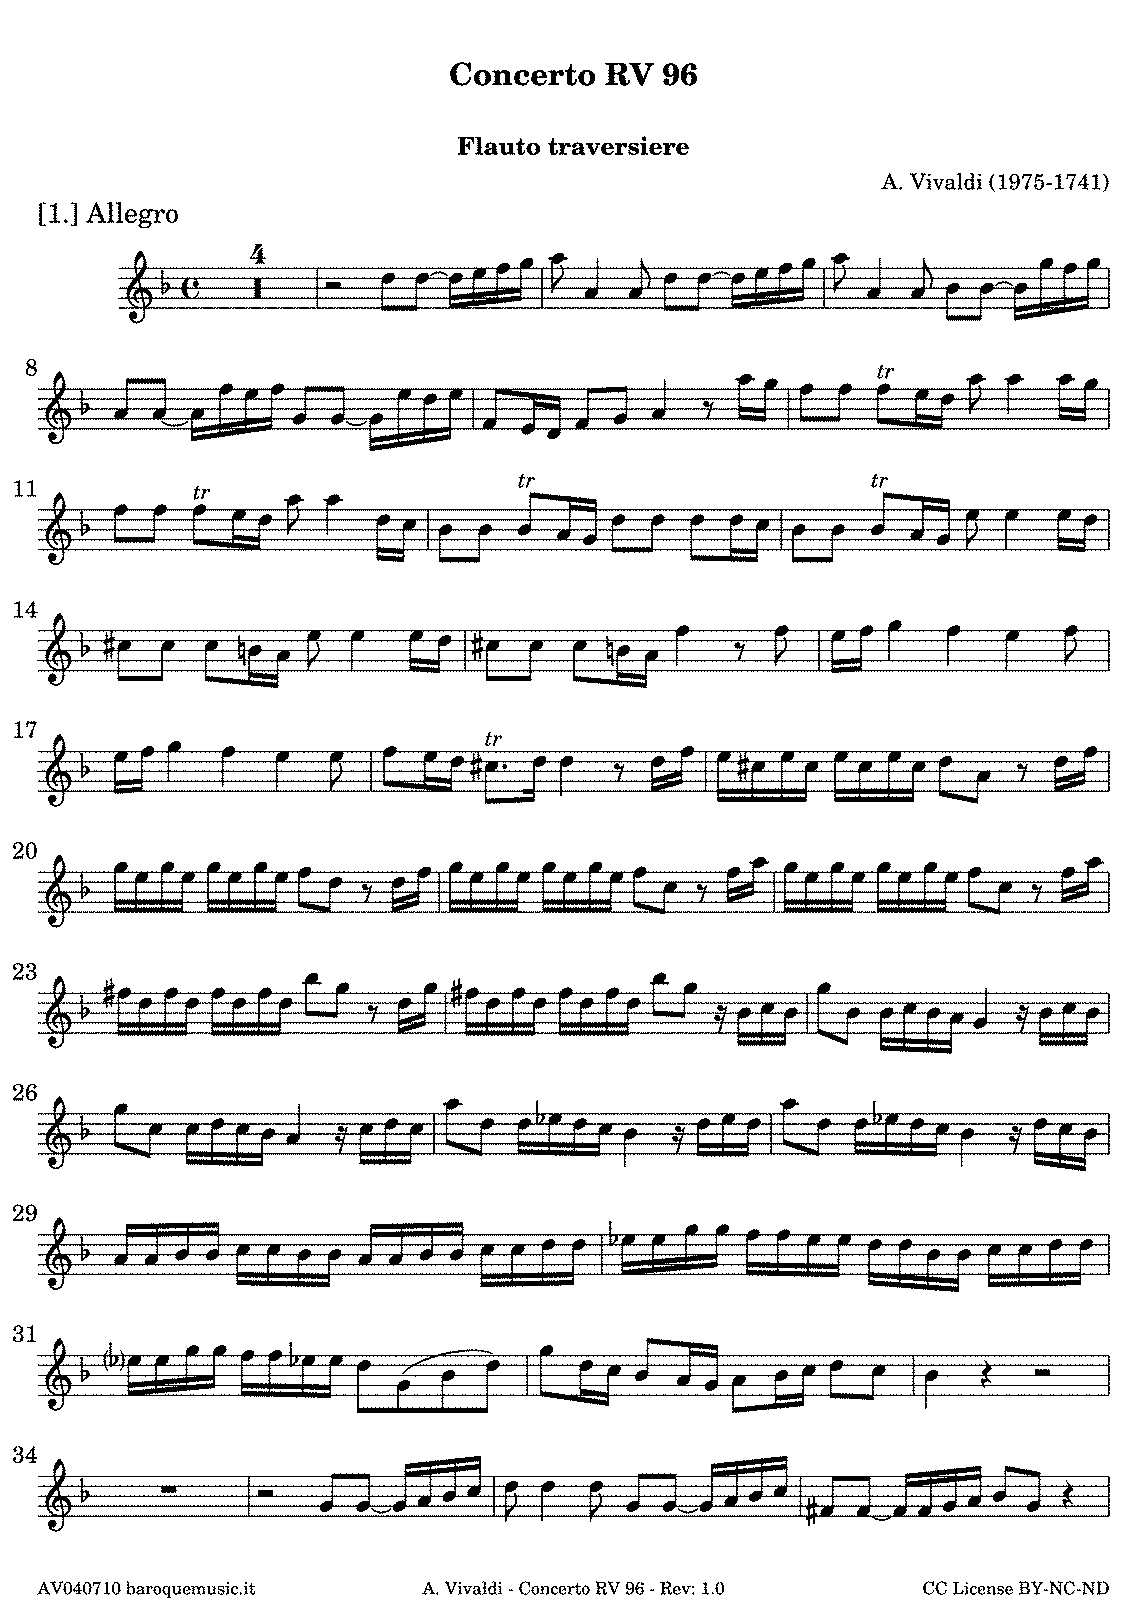 PMLP111272--baroquemusic.it- Concerto RV 96 -flauto-.pdf